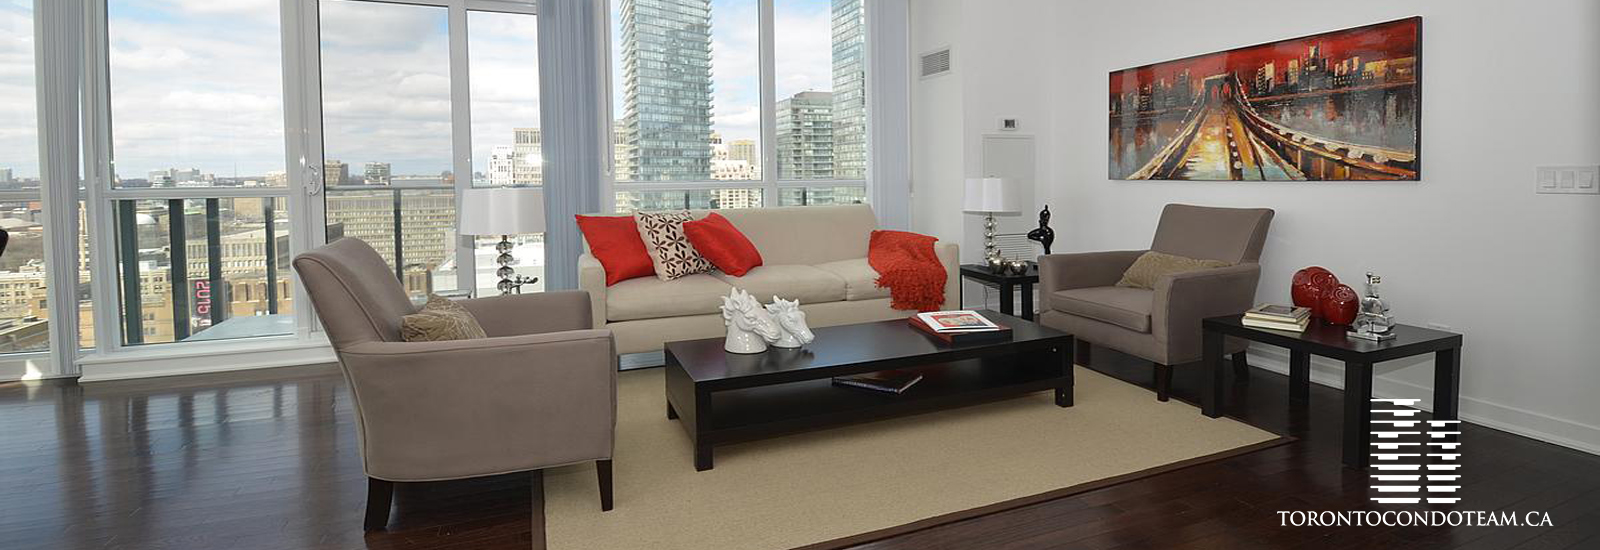 770 Bay Street Condos For Sale